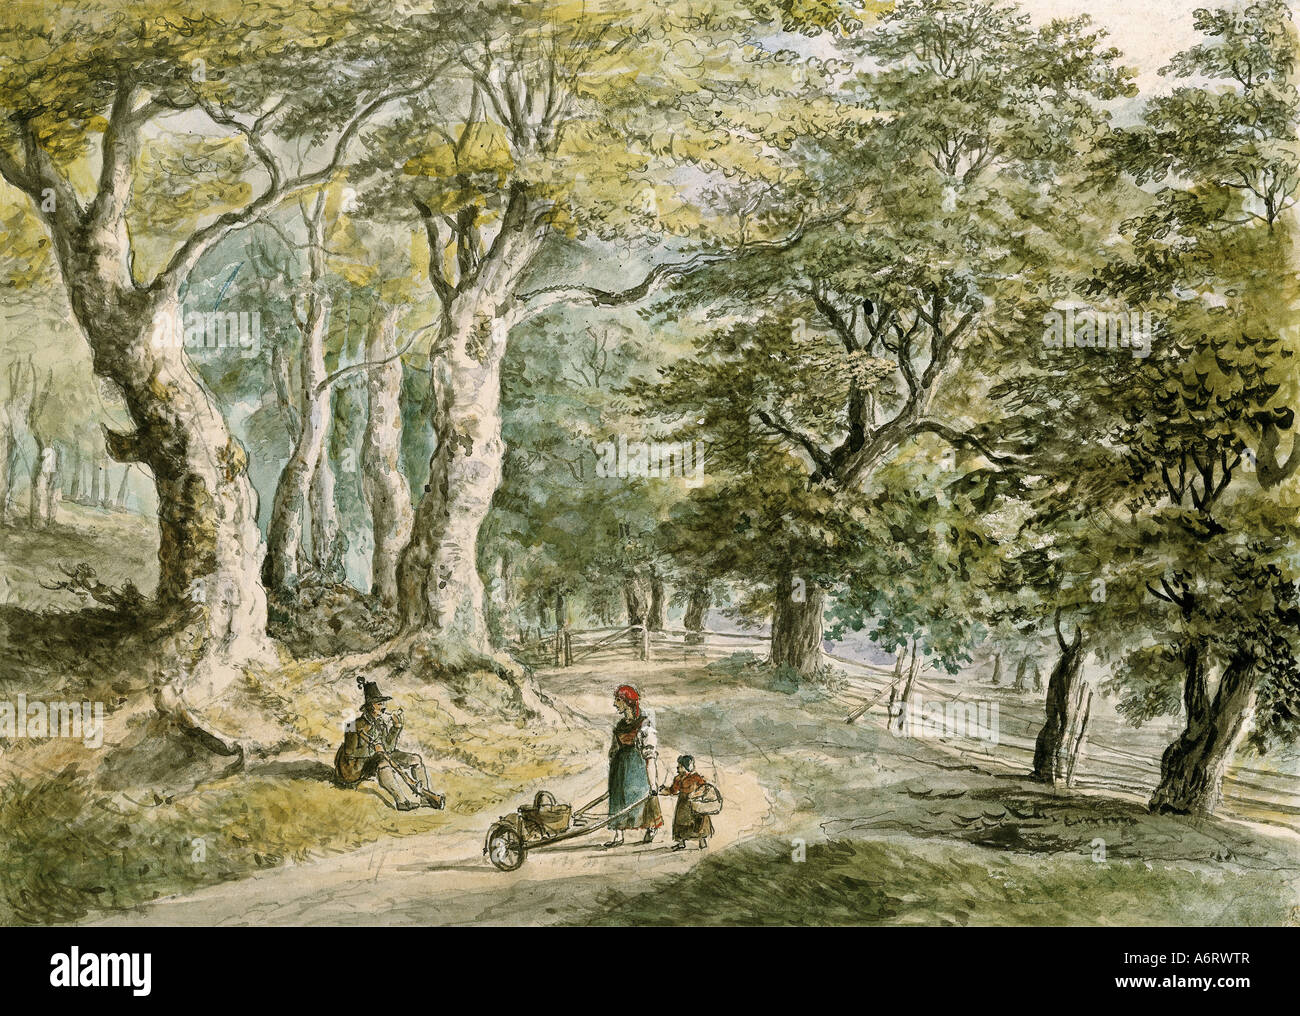 fine arts, Dorner, Johann Jakob, the Younger (1775 - 1852), forrest near Dietramszell, watercolour, 21,6x30 cm, - Stock Image